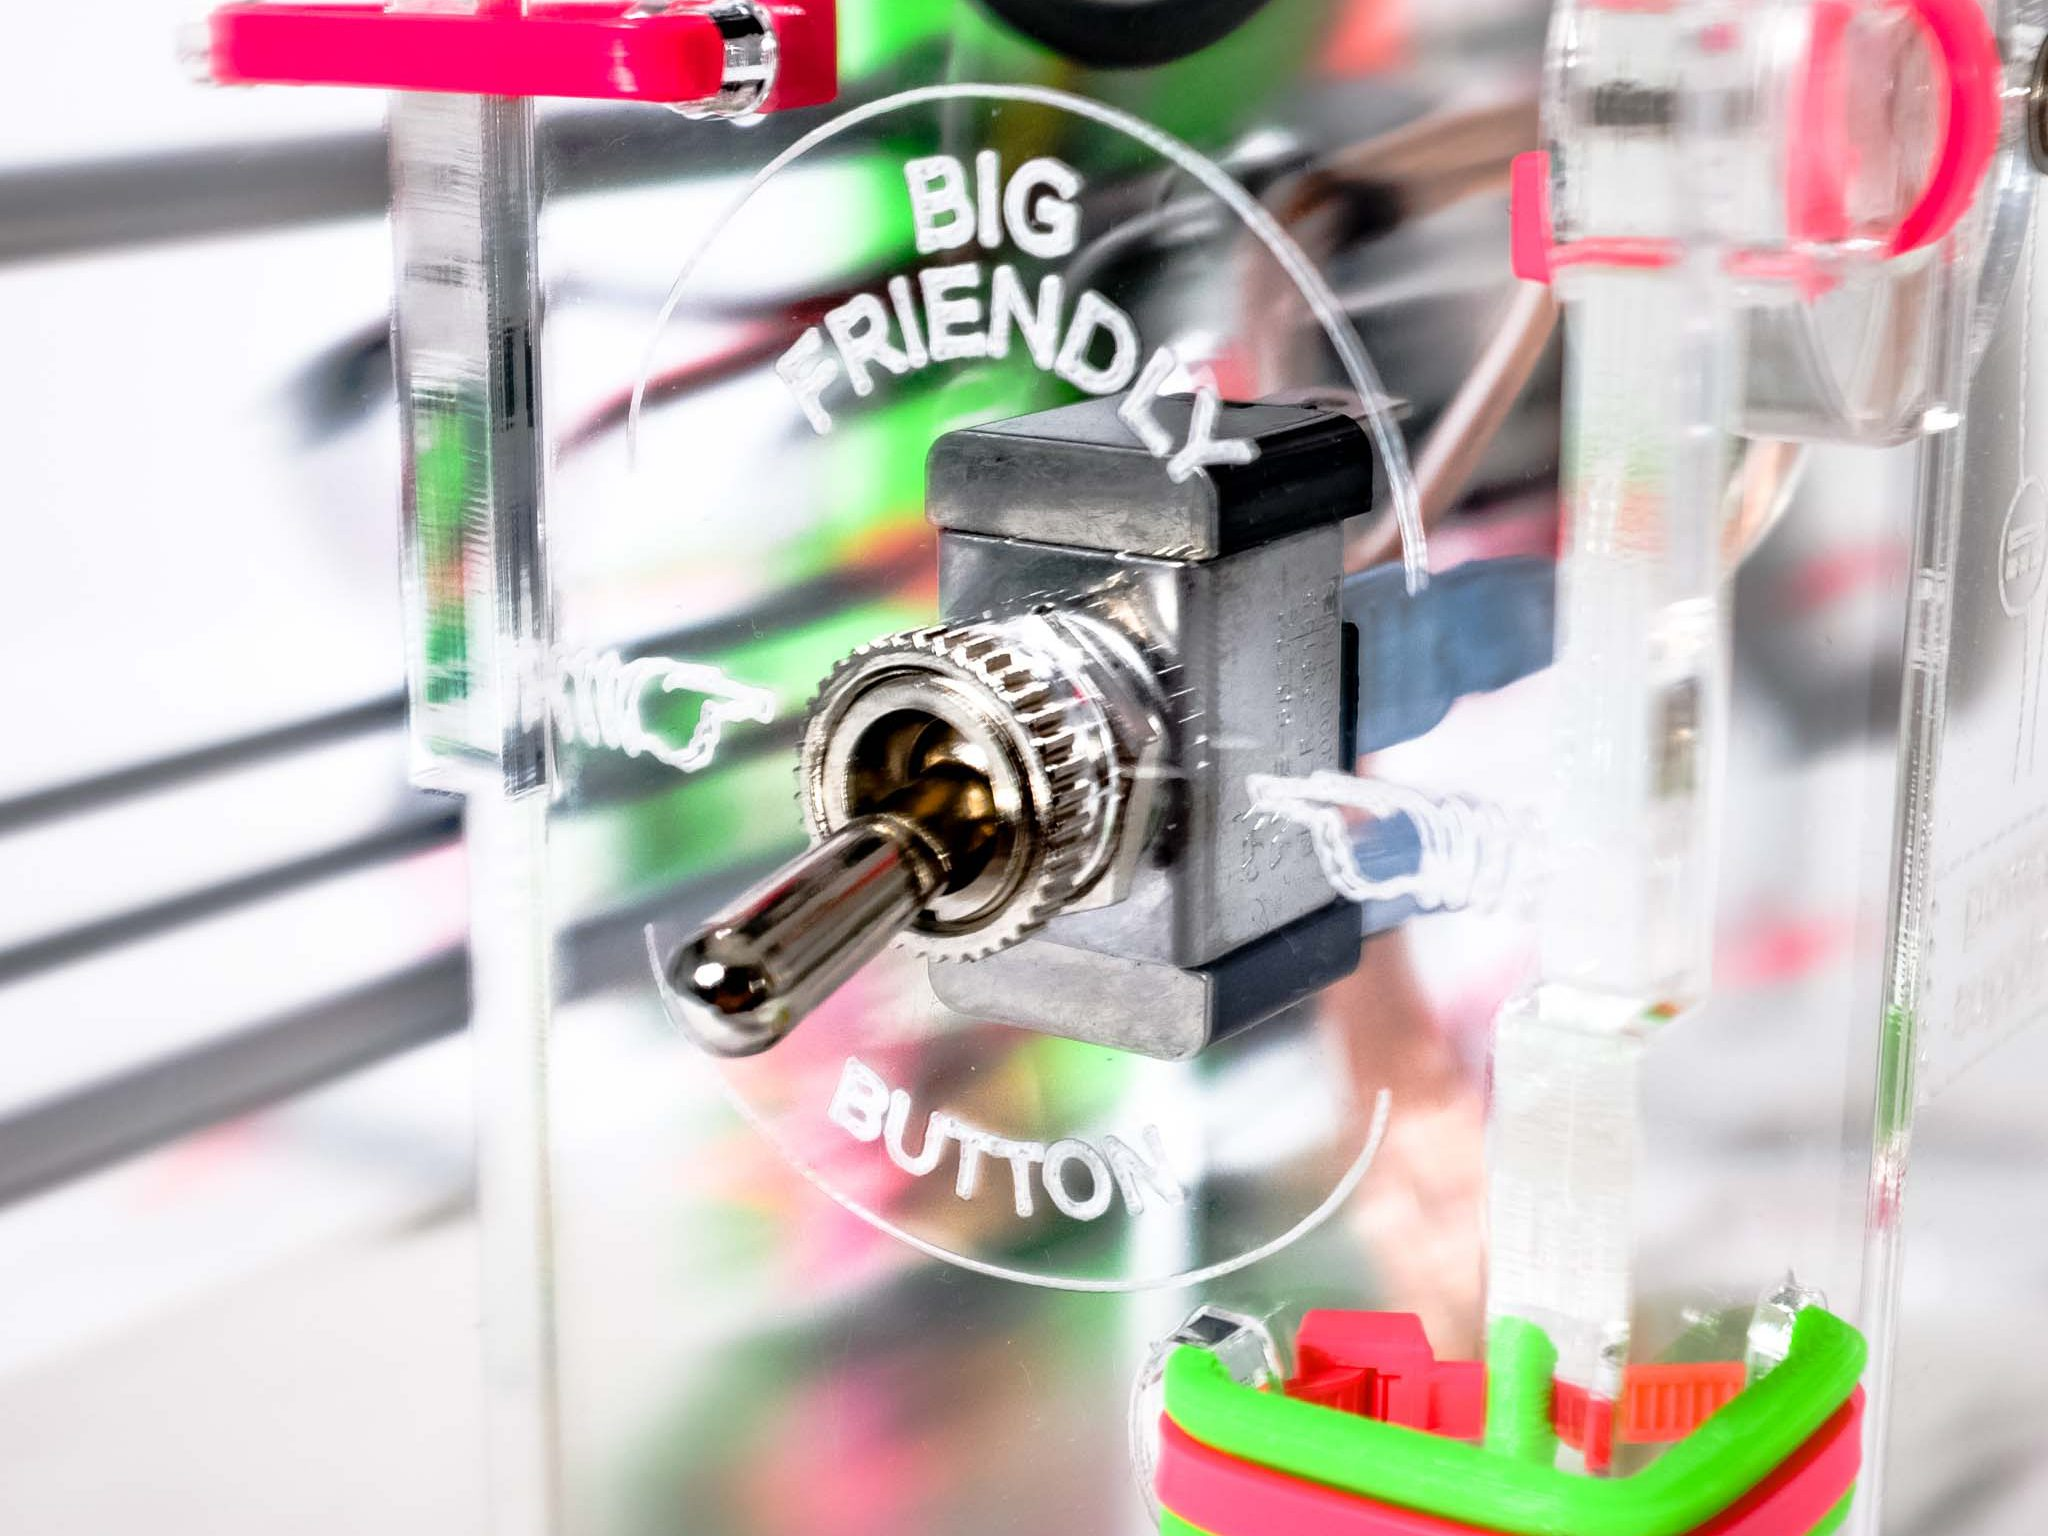 IMADE3D | JellyBOX 3D Printer - Educational Experiences in Technology